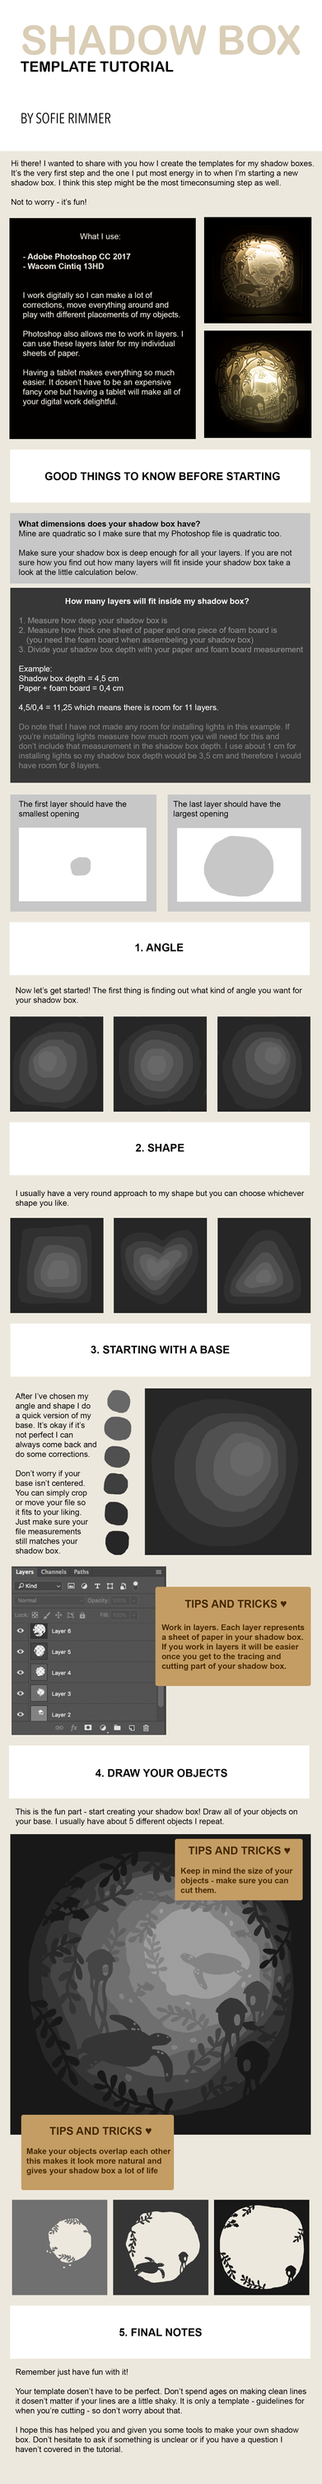 Shadow Box Template Tutorial by sofierimmer